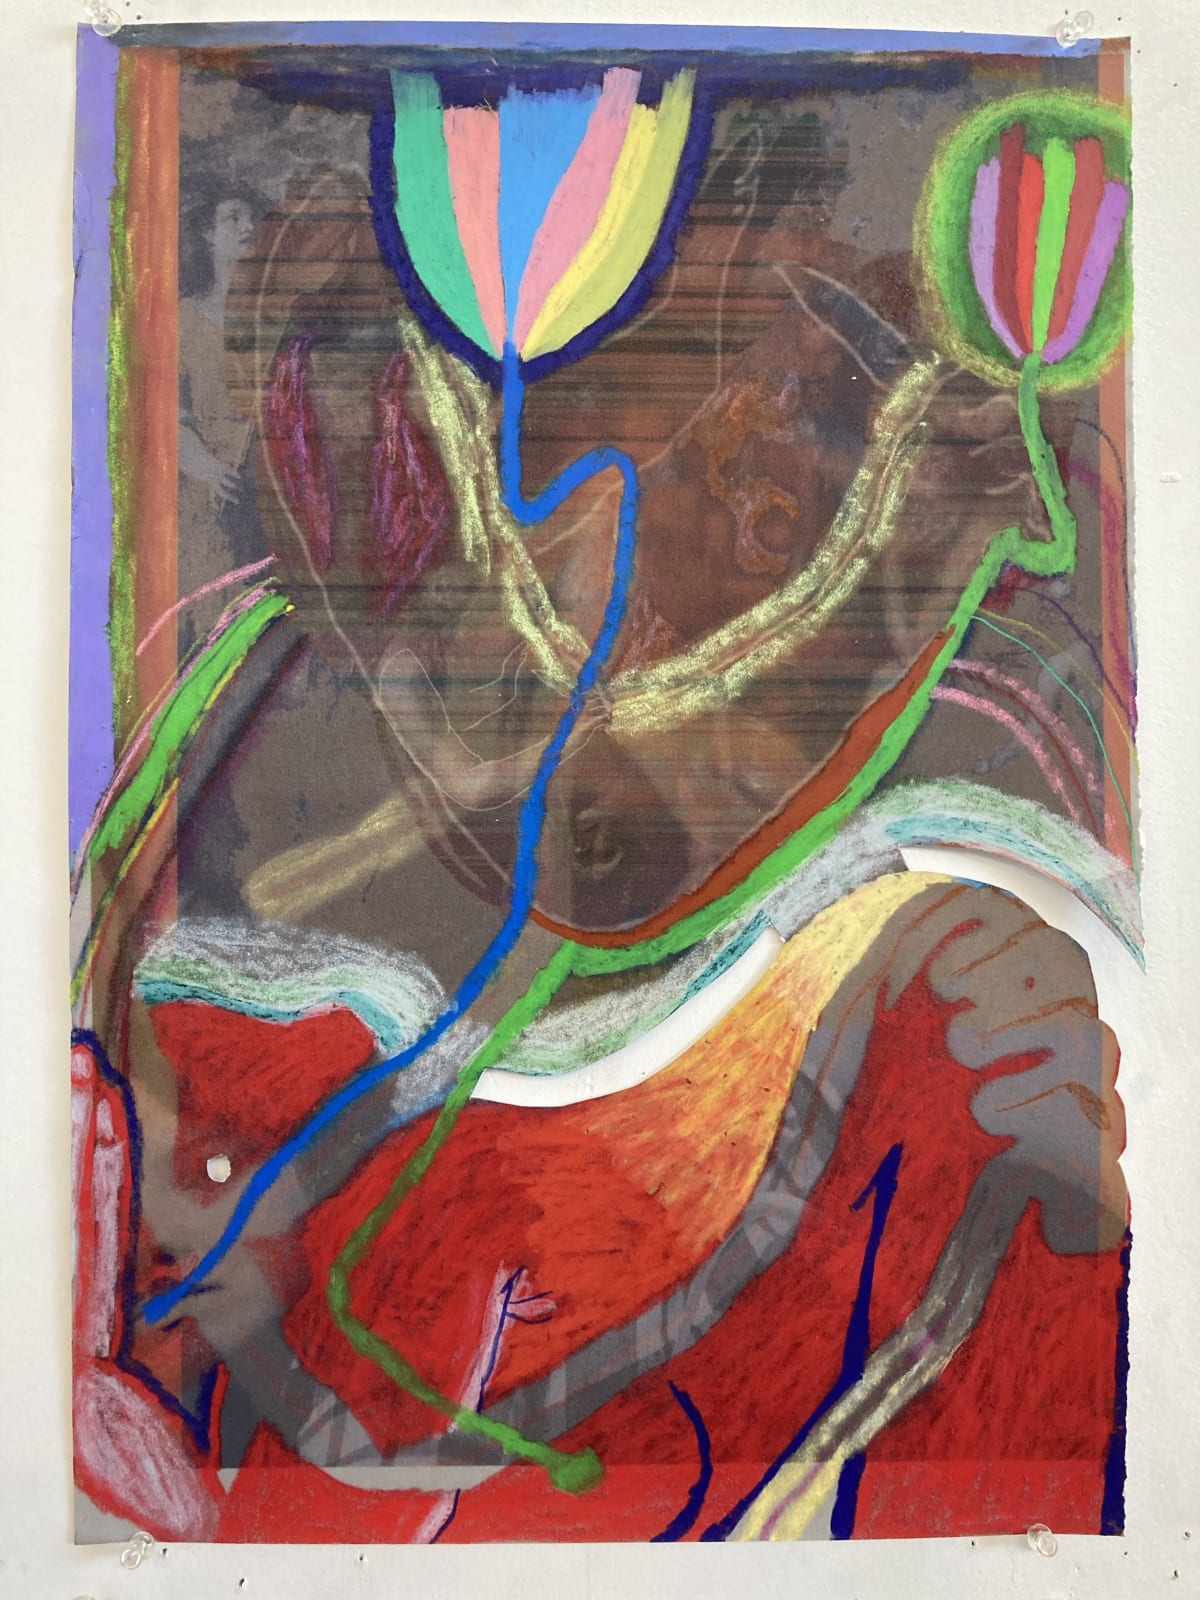 Gaby Collins-Fernandez No Peeking, 2020 Crayons and digital photocollage on flocked paper 19 x 13.5 in 48.3 x 34.3 cm